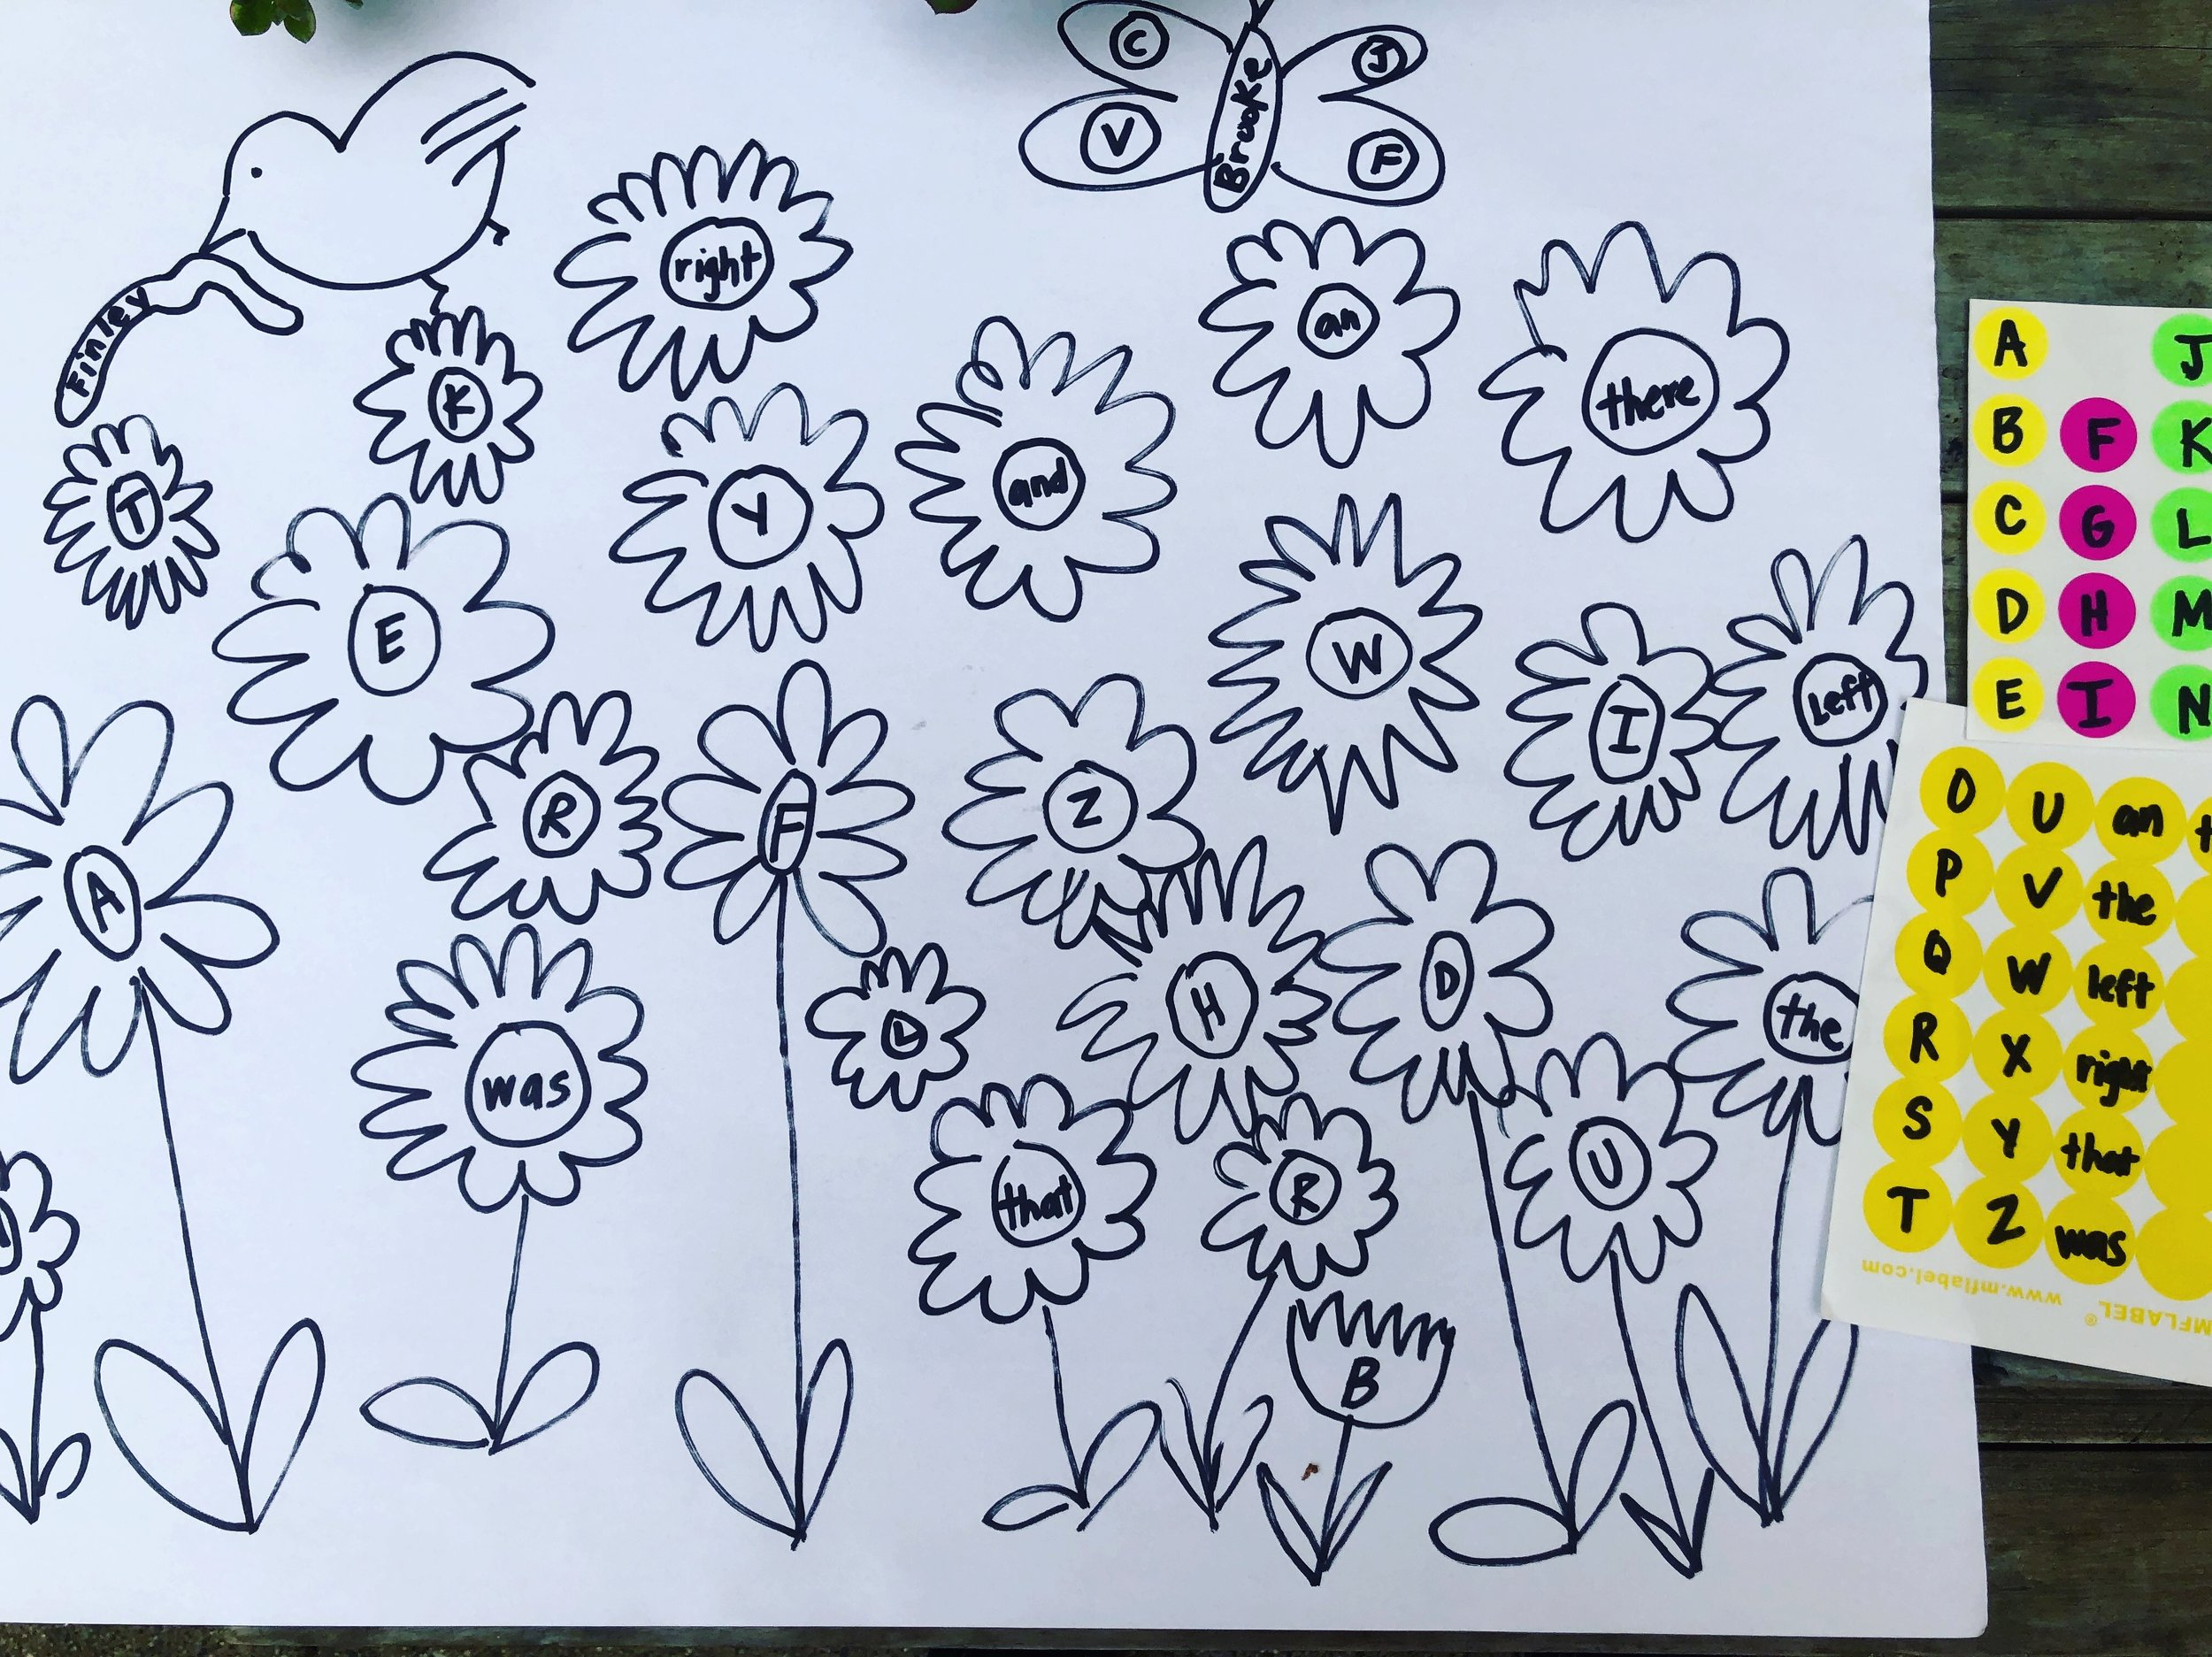 This took 5 minutes to quickly make- drawing flowers with sight words and letters. You can do it with numbers too, and stickers that you can pick up at the grocery store even!